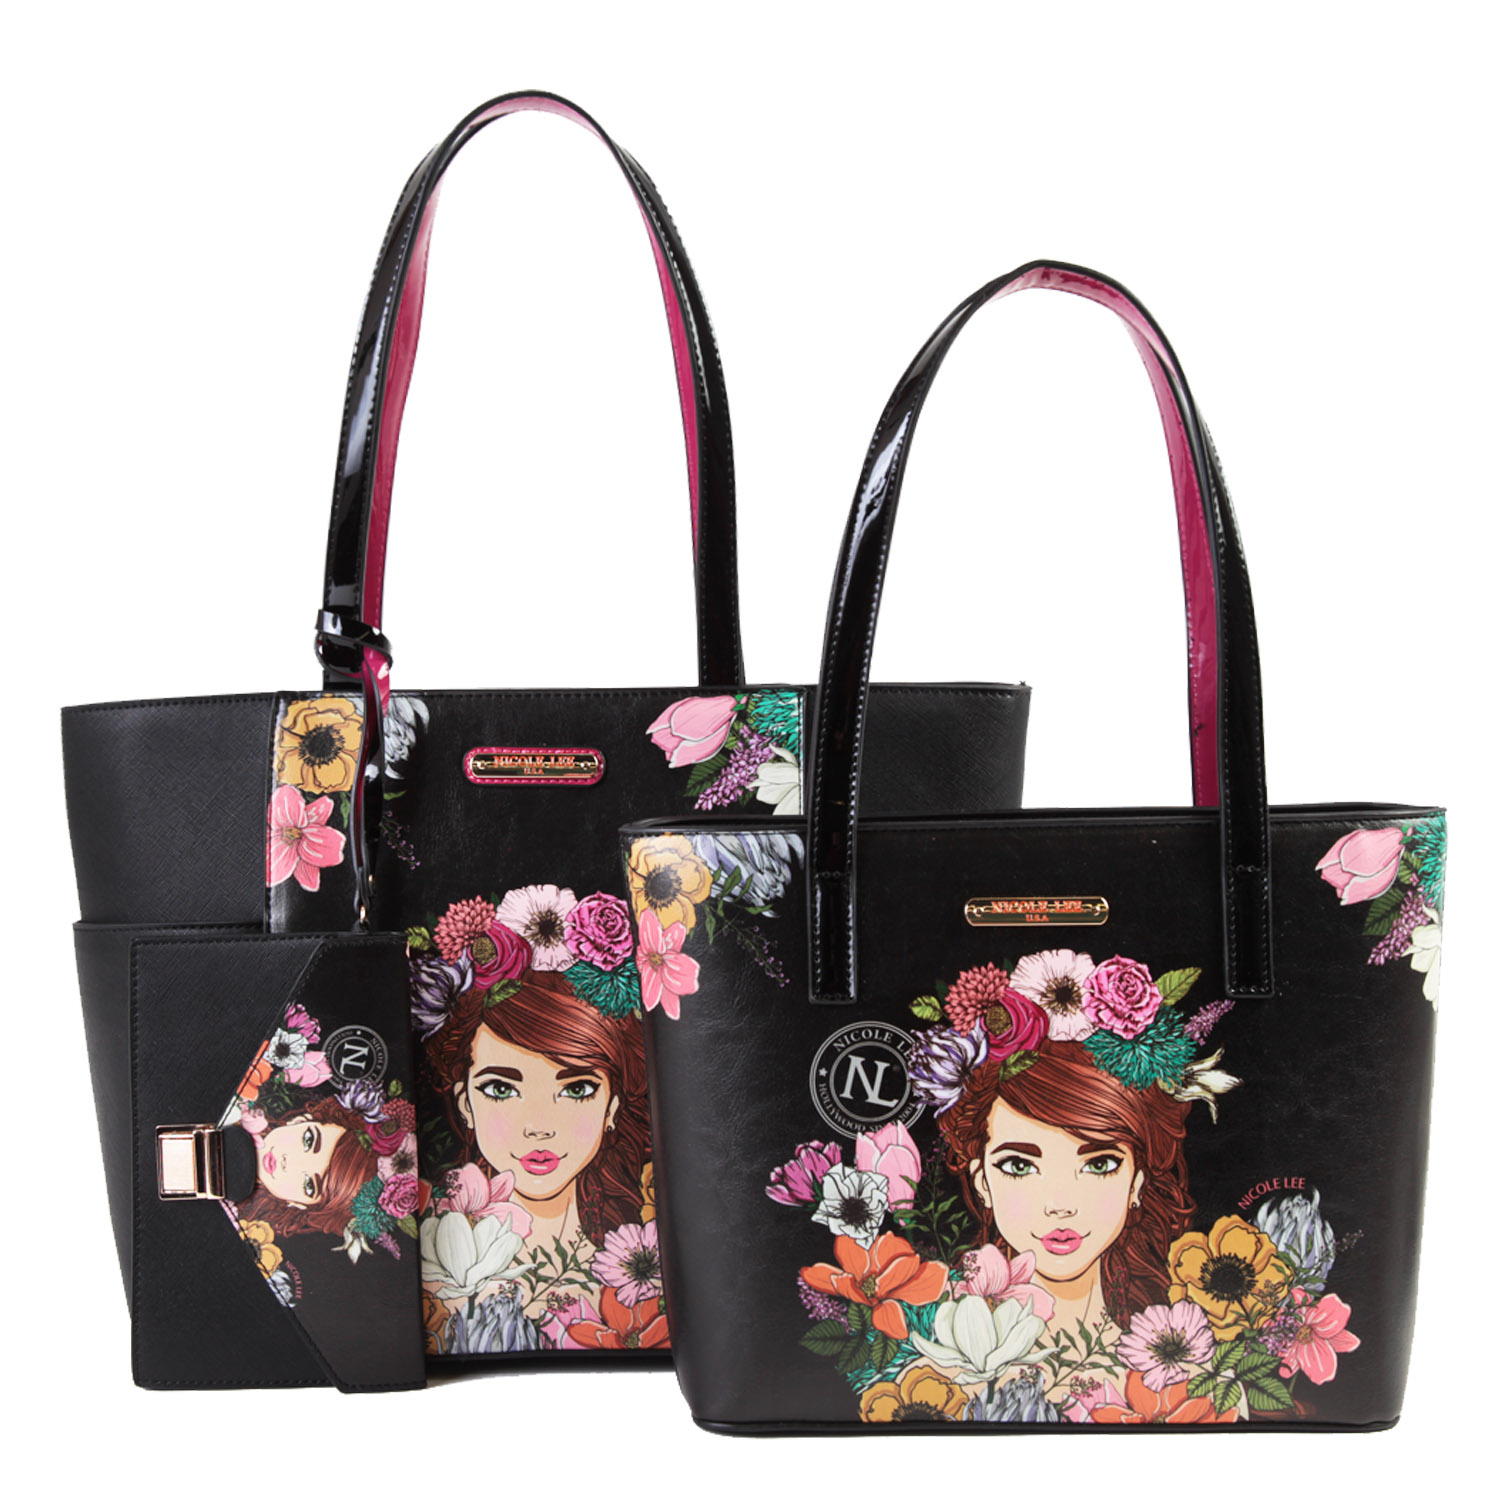 NICOLE LEE 3 in 1 Shopper Bag HTM